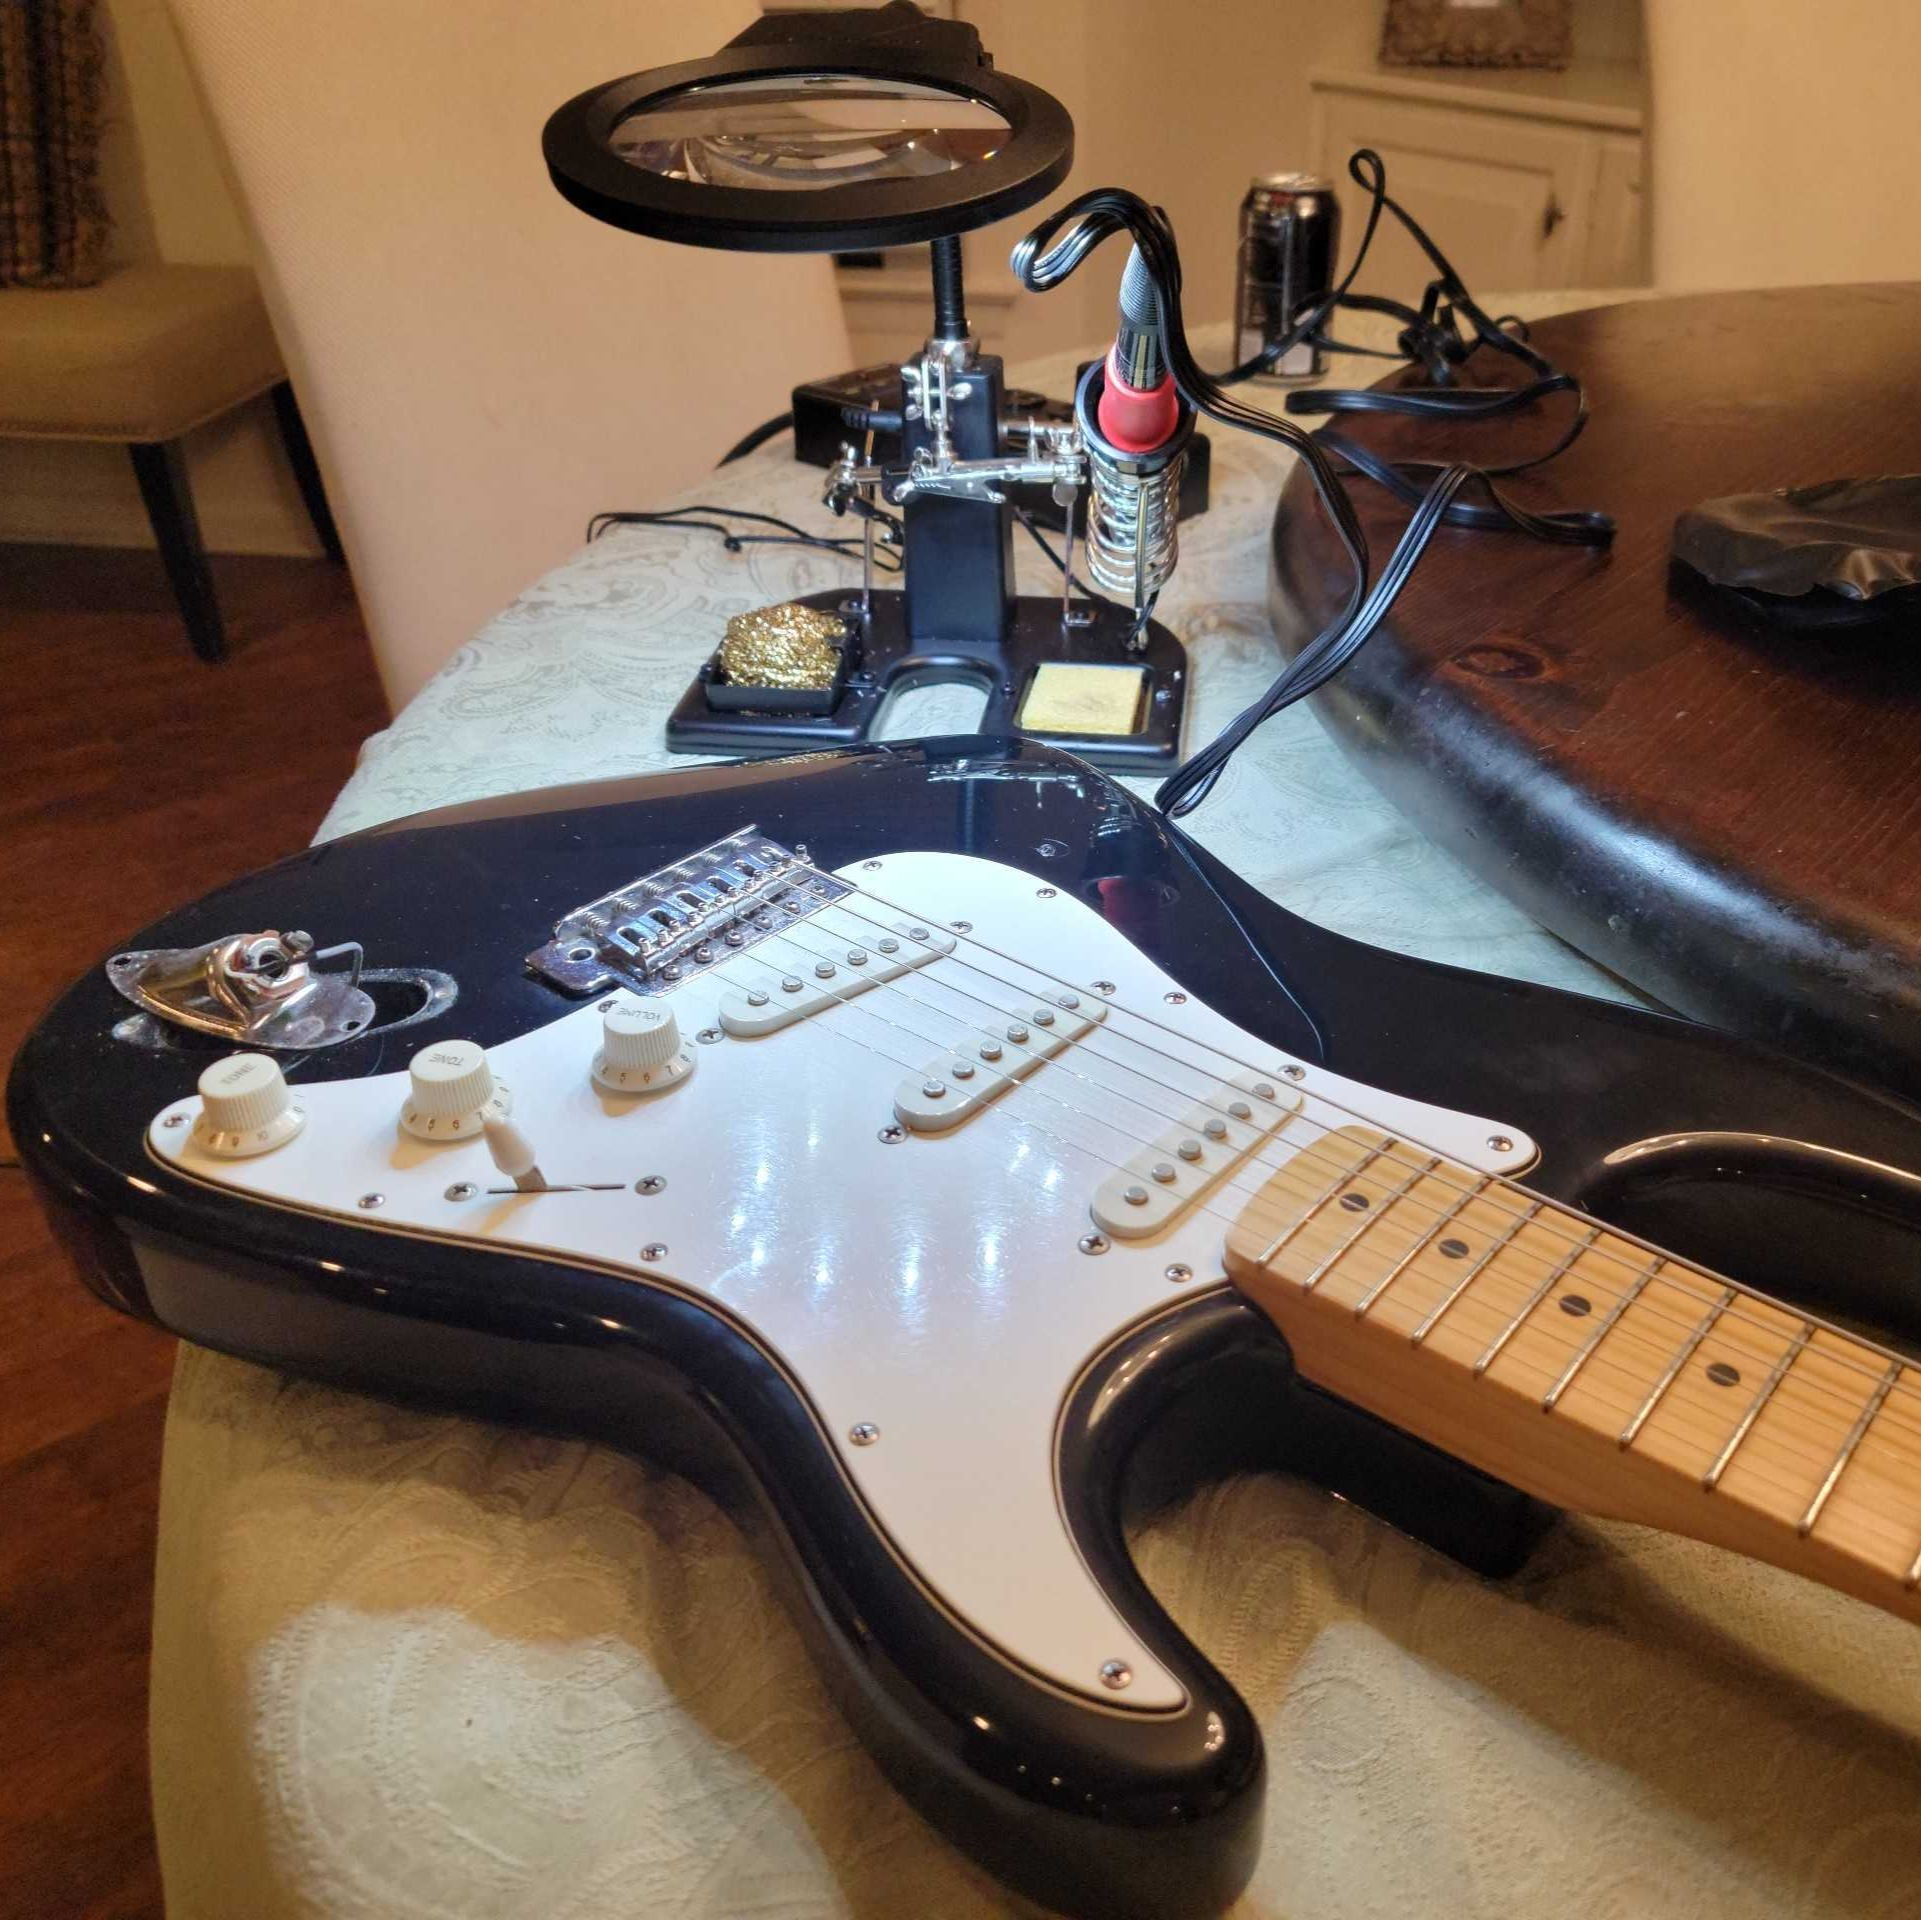 AFTER THE SHOW PODCAST: Murphy, The Guitar Surgeon